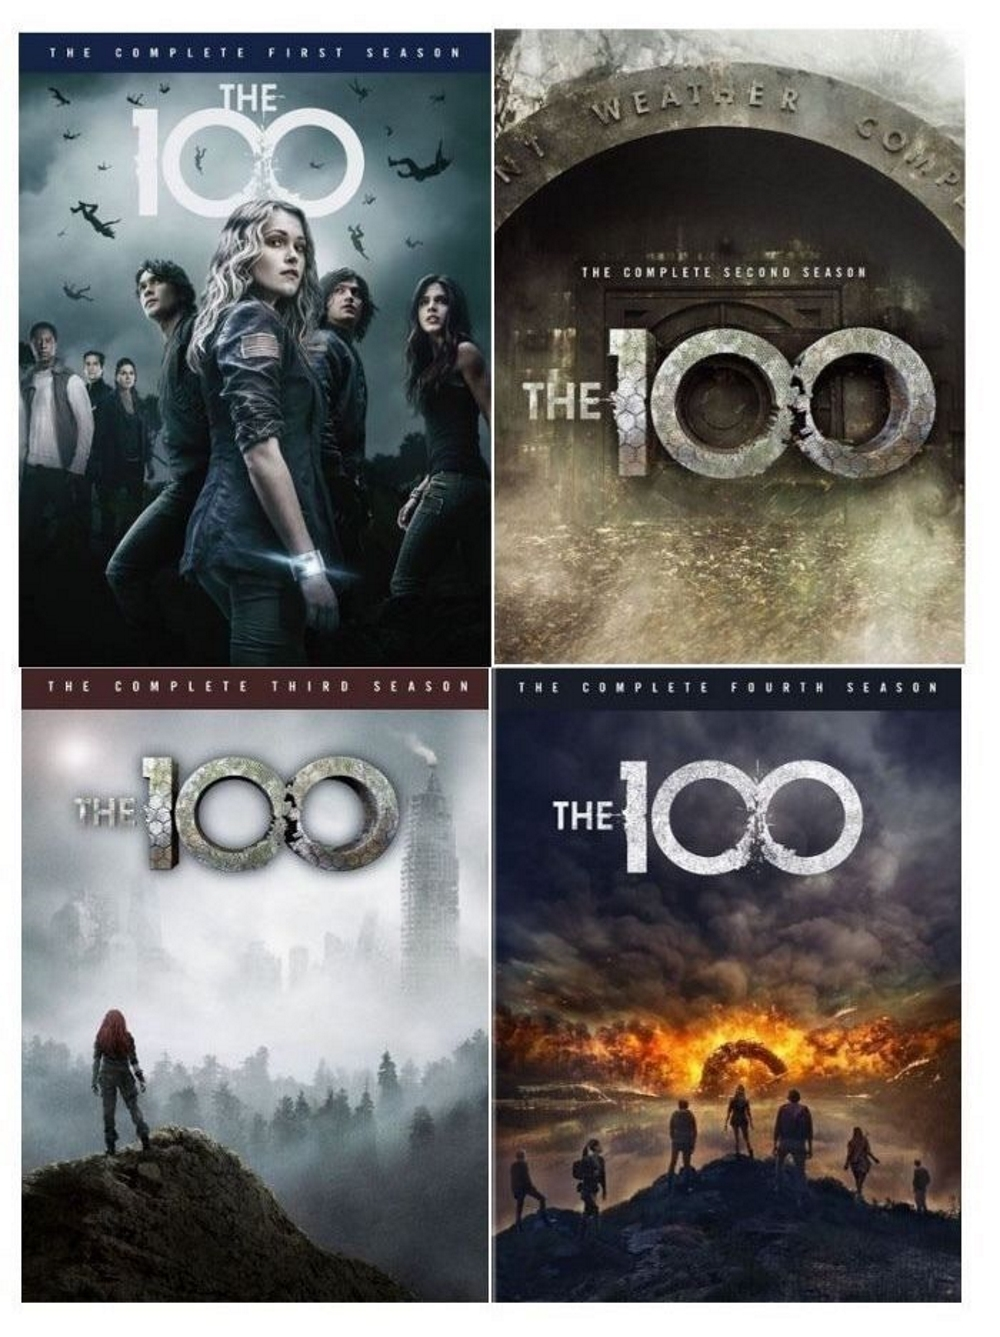 The 100 season 1 4 dvd 1 2 3 4